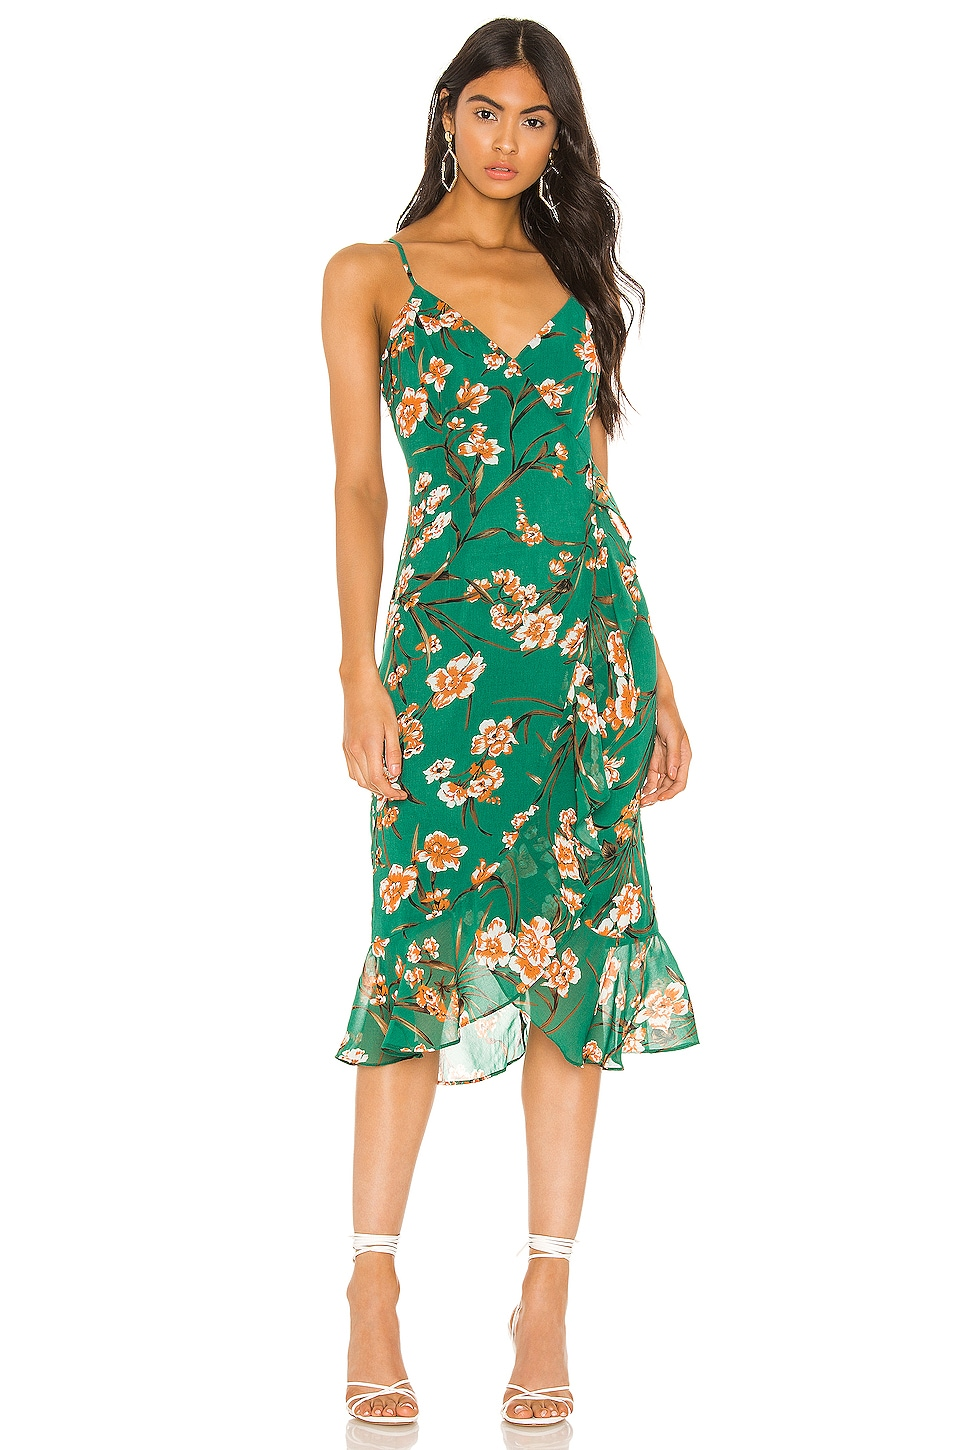 Bardot Malika Dress in Orange Floral